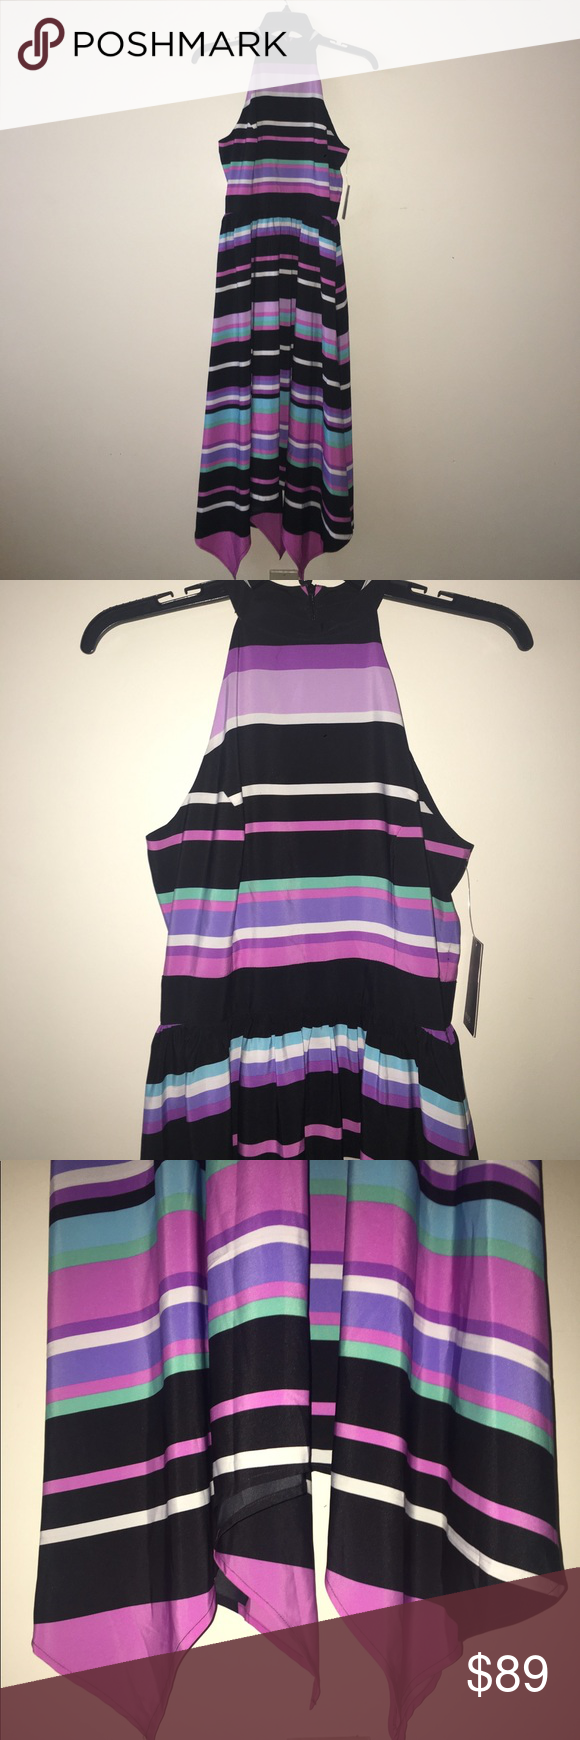 """*NWT* muse Striped Maxi Dress (2) High halter neckline with a princess seamed bodice. Fitted waist that falls into a softly-pleated flowy skirt with handkerchief details at the hem. Hidden back zip closure. Lightweight. Partially lined. 100% Polyester. Hand wash or Dry clean.  Approx. center back length is 40-48* inches (*measuring down the back center seam to hem is 40"""", plus 8"""" for scattered handkerchief detail)   SIZE:  2 (S) COLOR:  Purple Multi  *** NEW WITH TAG *** muse Dresses"""